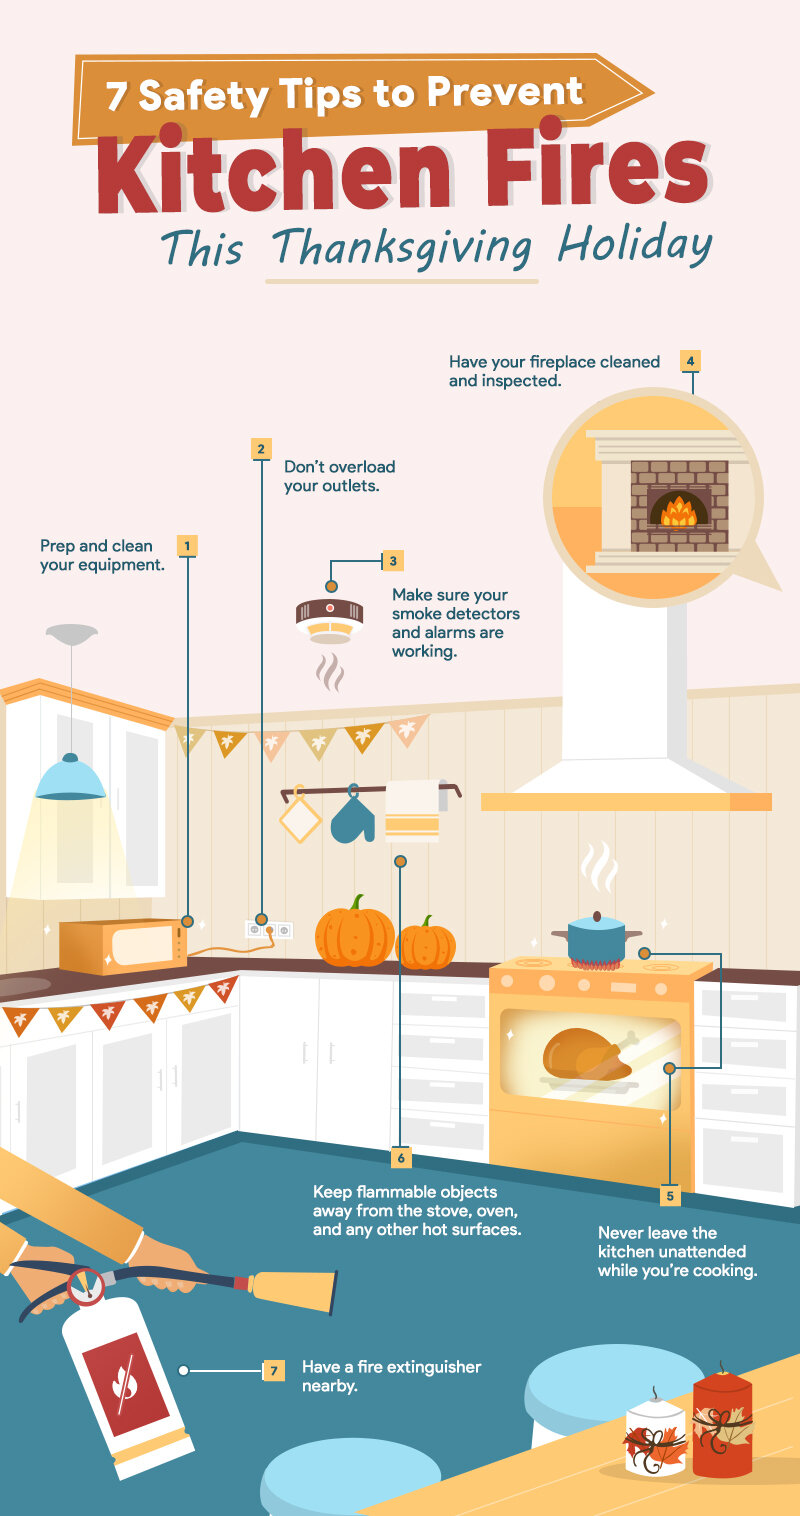 7 Safety Tips to Prevent Kitchen Fires This Thanksgiving Holiday